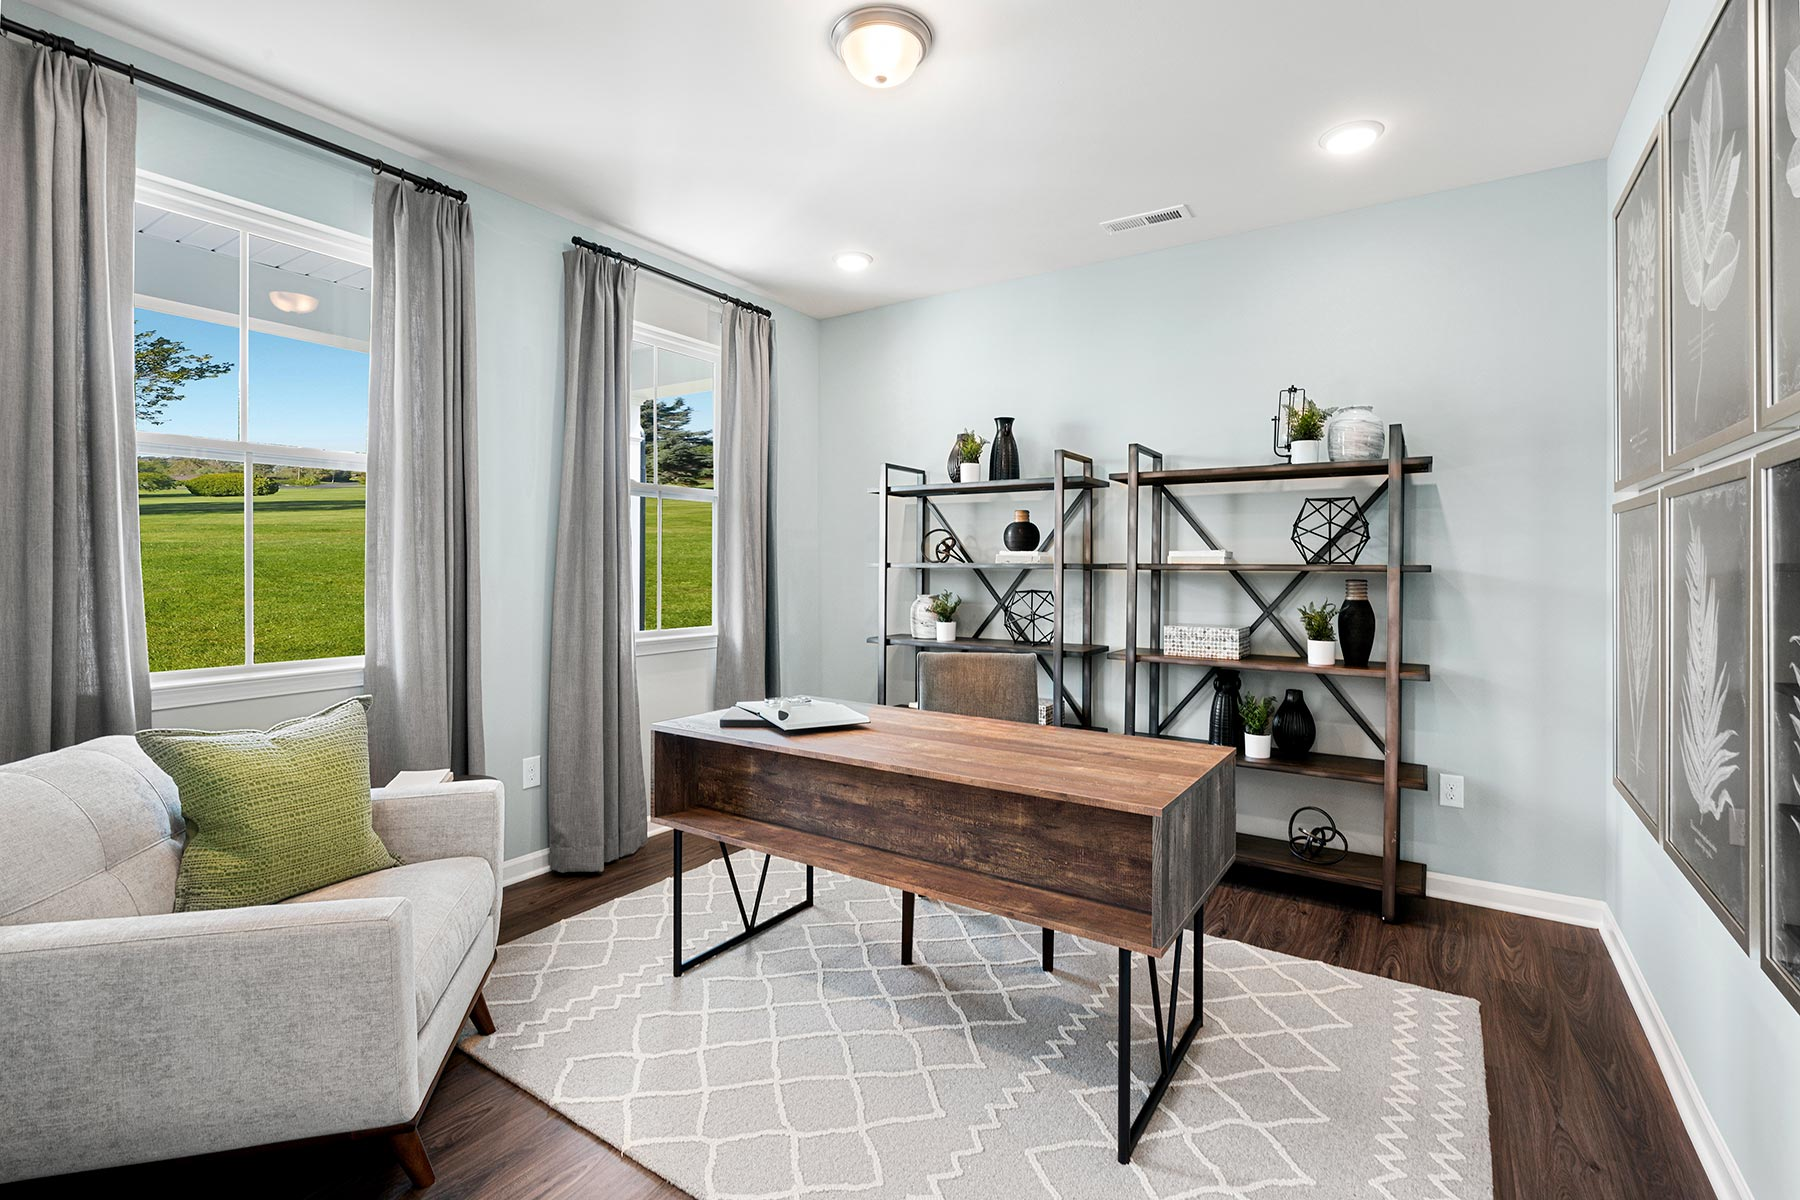 Gaines Plan Study Room at Wendell Falls in Wendell North Carolina by Mattamy Homes